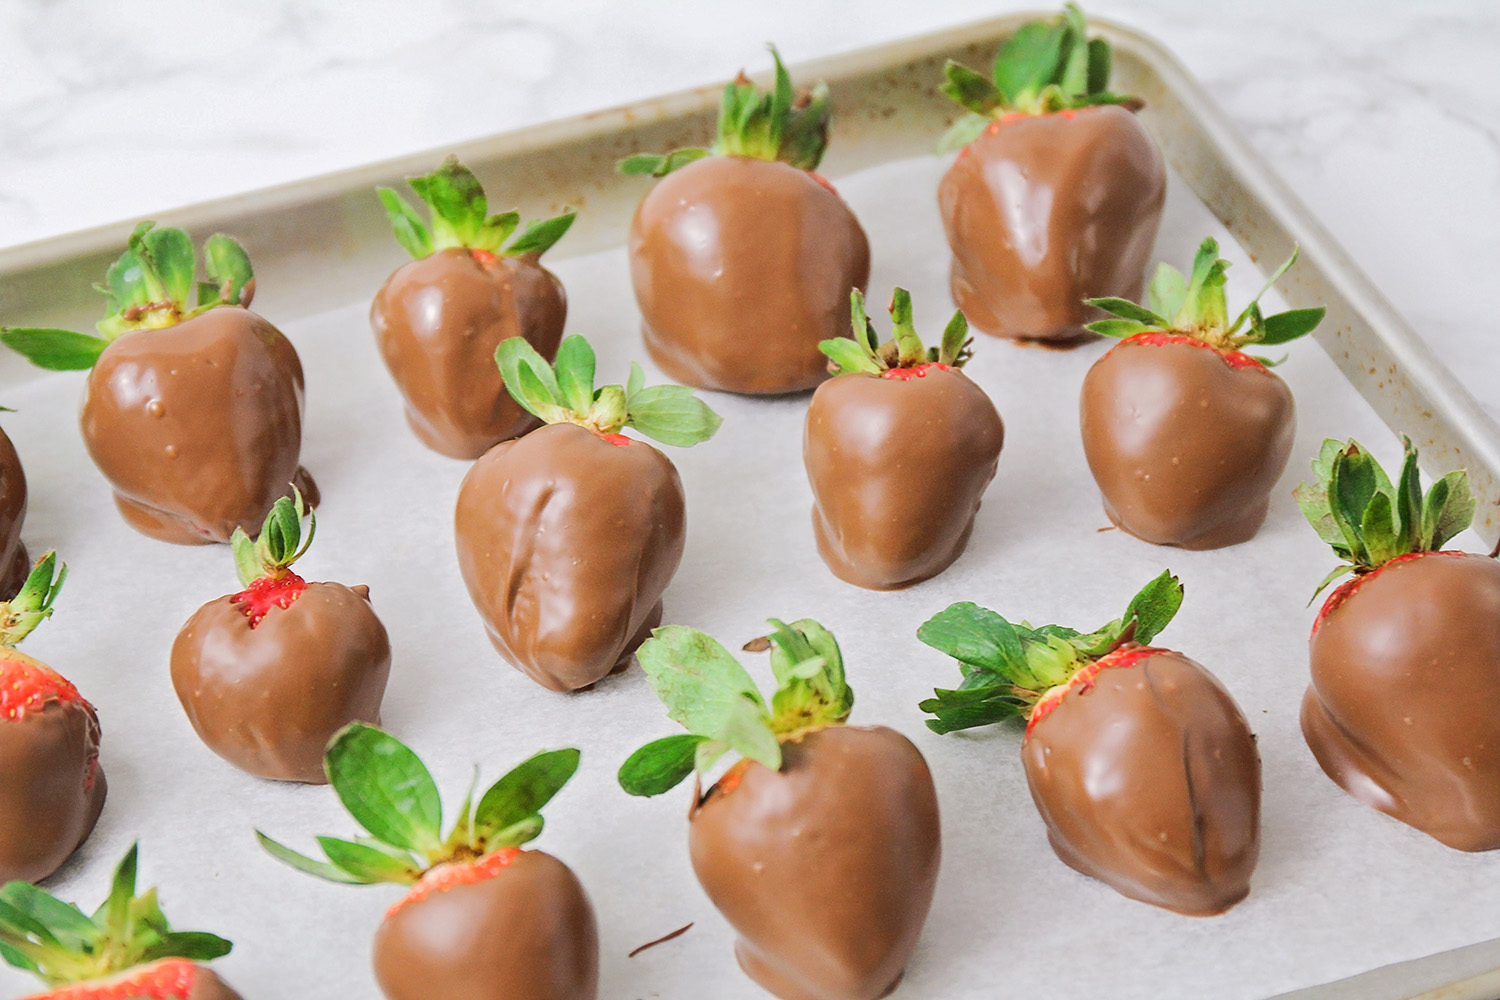 These homemade chocolate covered strawberries are so easy to make and so delicious! They're the perfect romantic dessert for Valentine's Day!